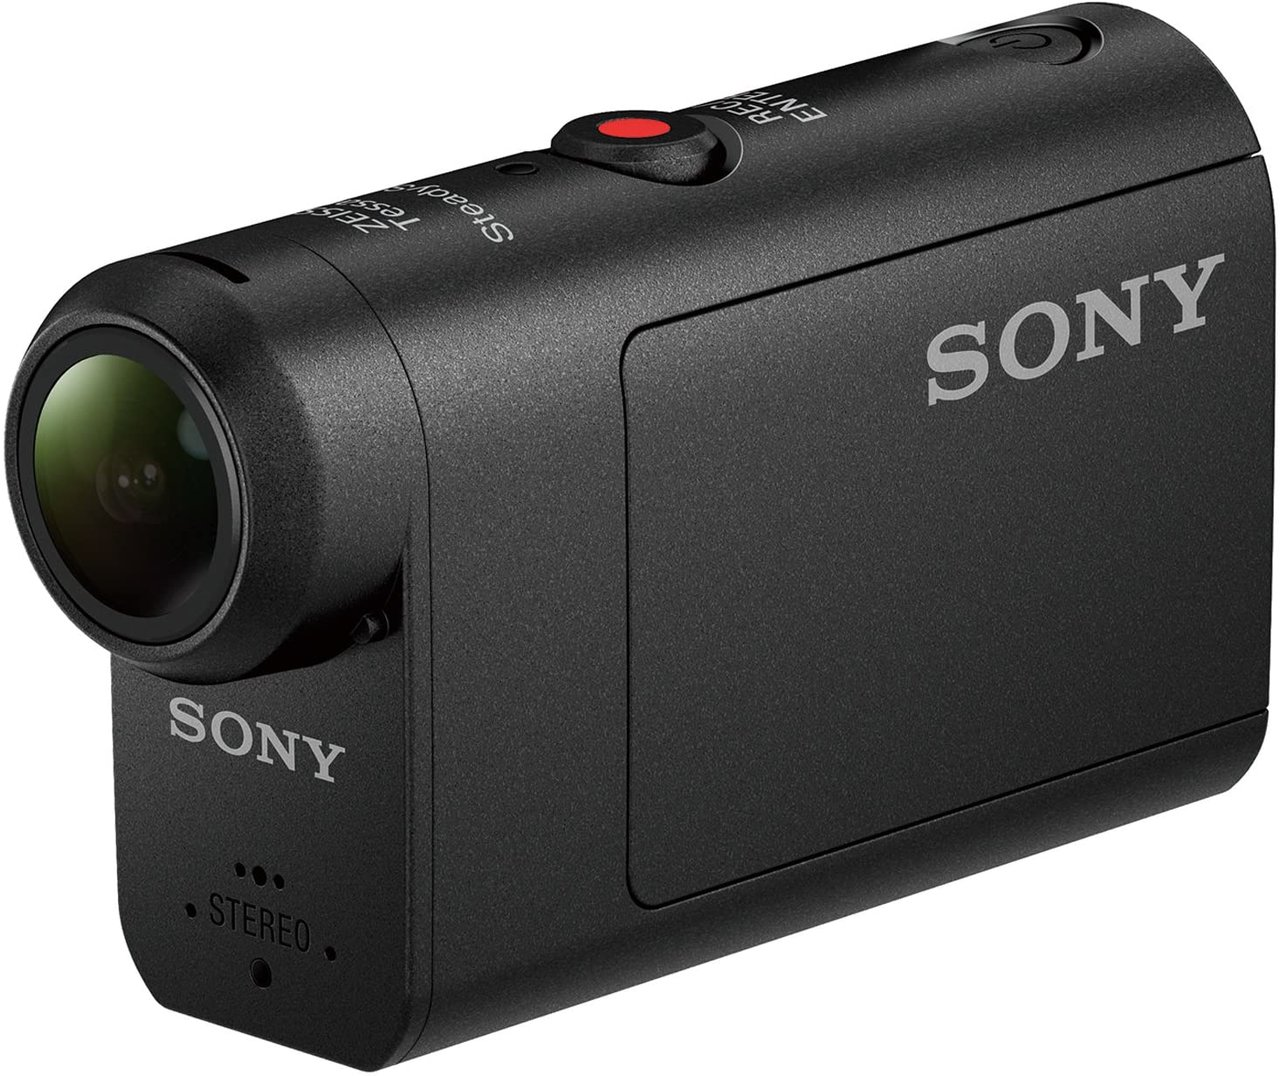 SONY HDR-AS50 4K運動攝影機